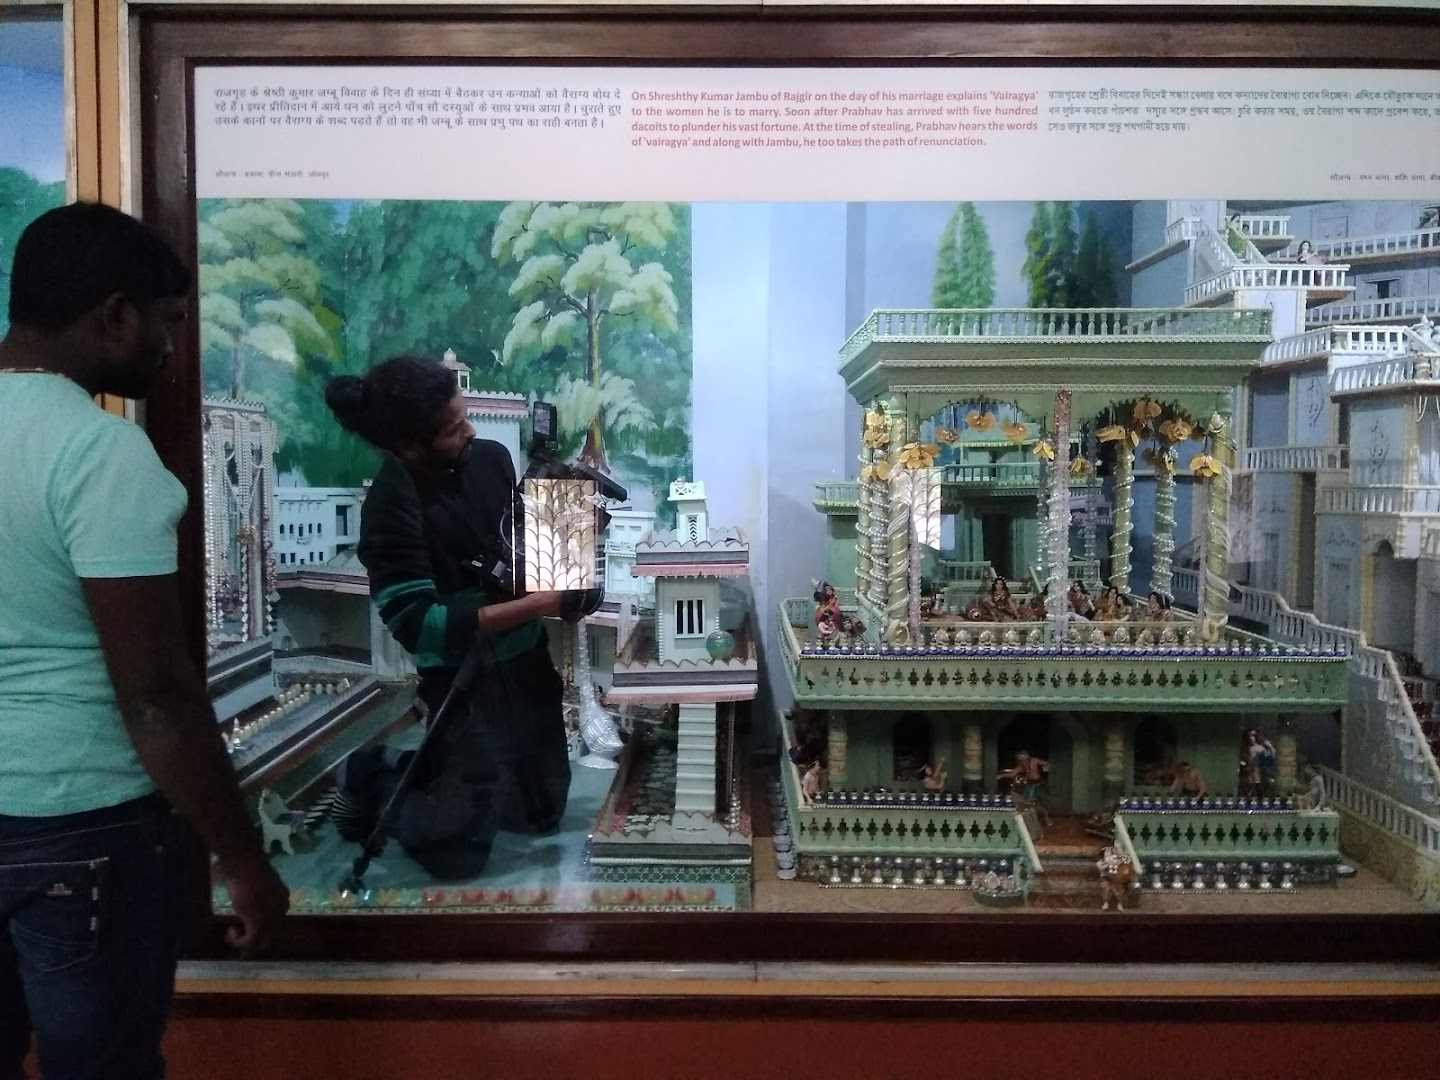 Prem inside a showcase while filming a documentary on Jainism (in post production), Ahmedabad